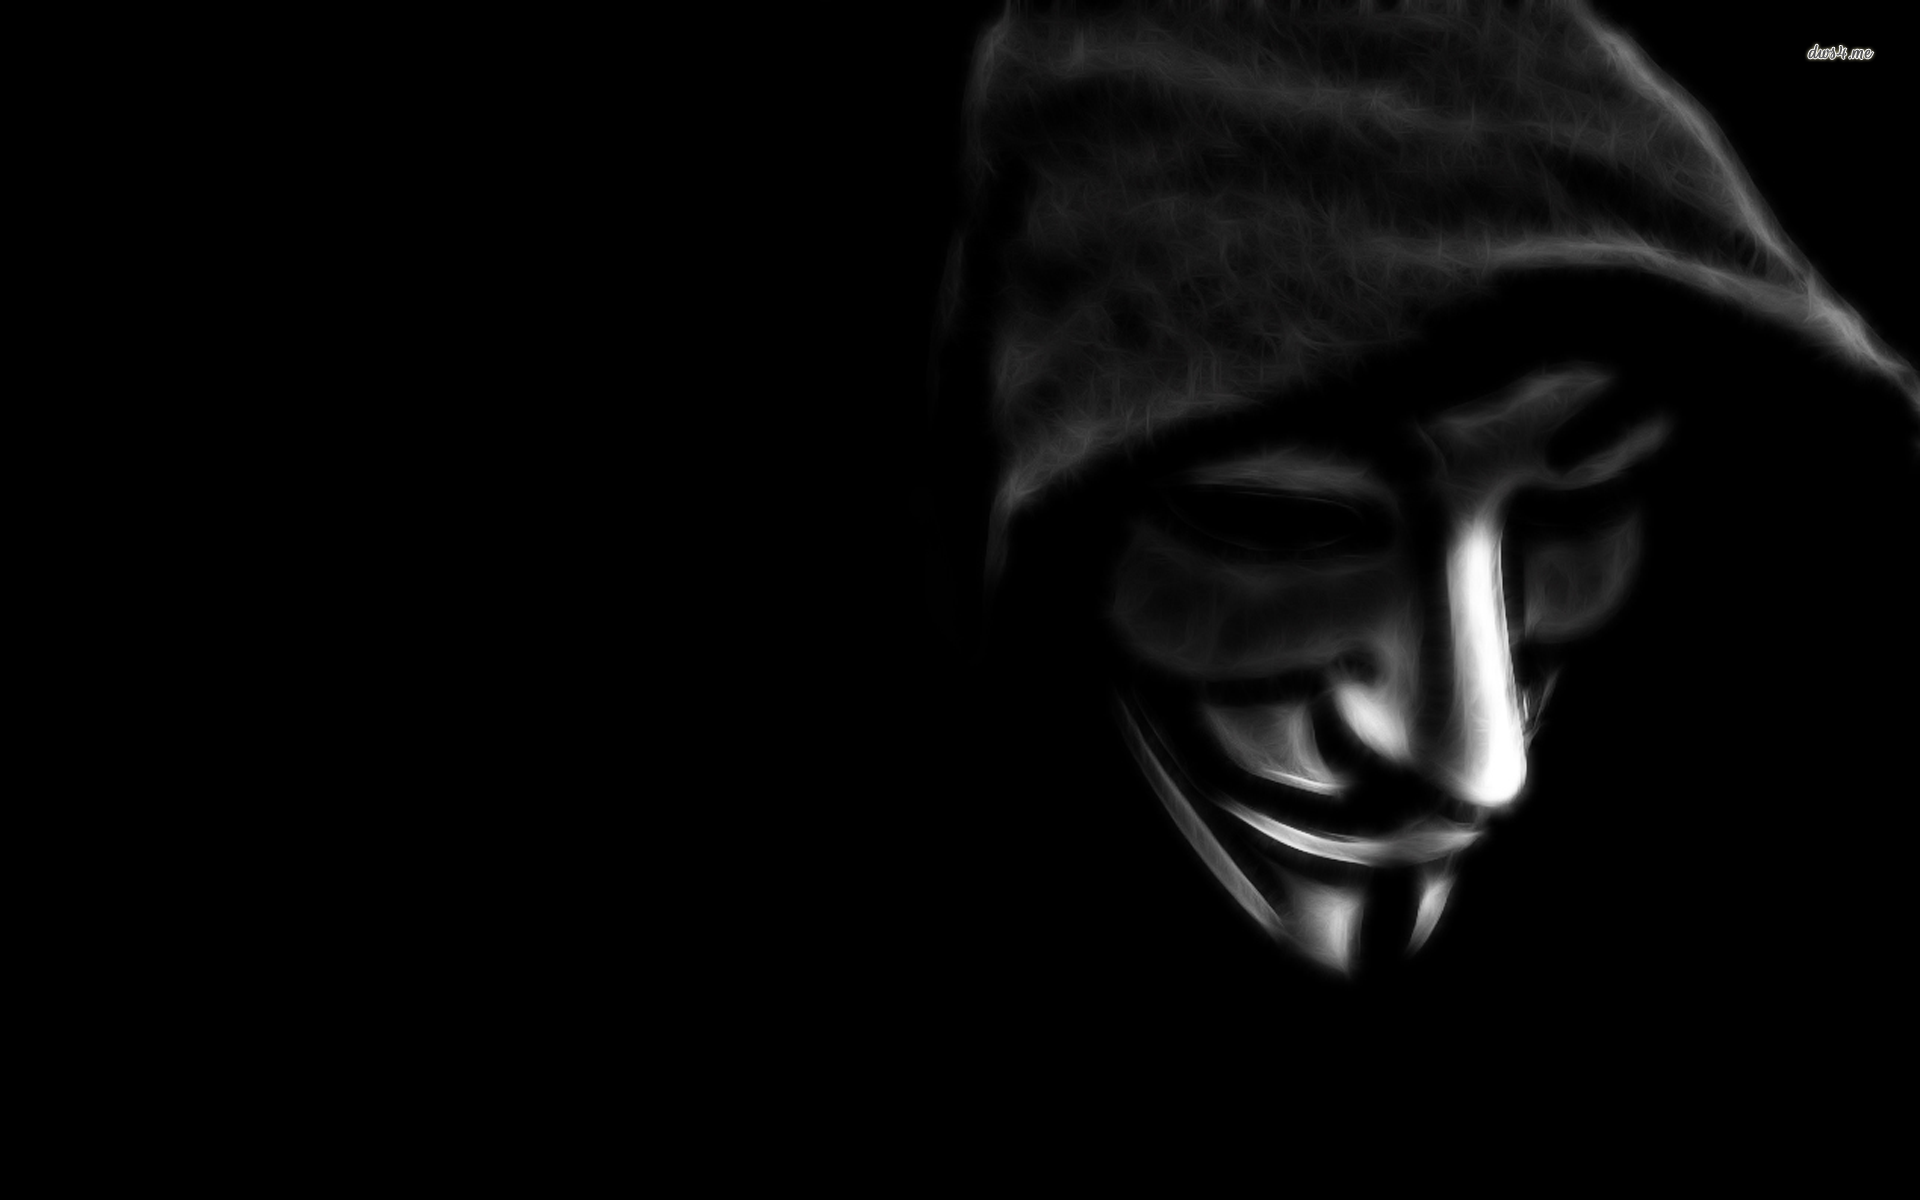 Anonymous Wallpaper Desktop #h39534802, 0.32 Mb